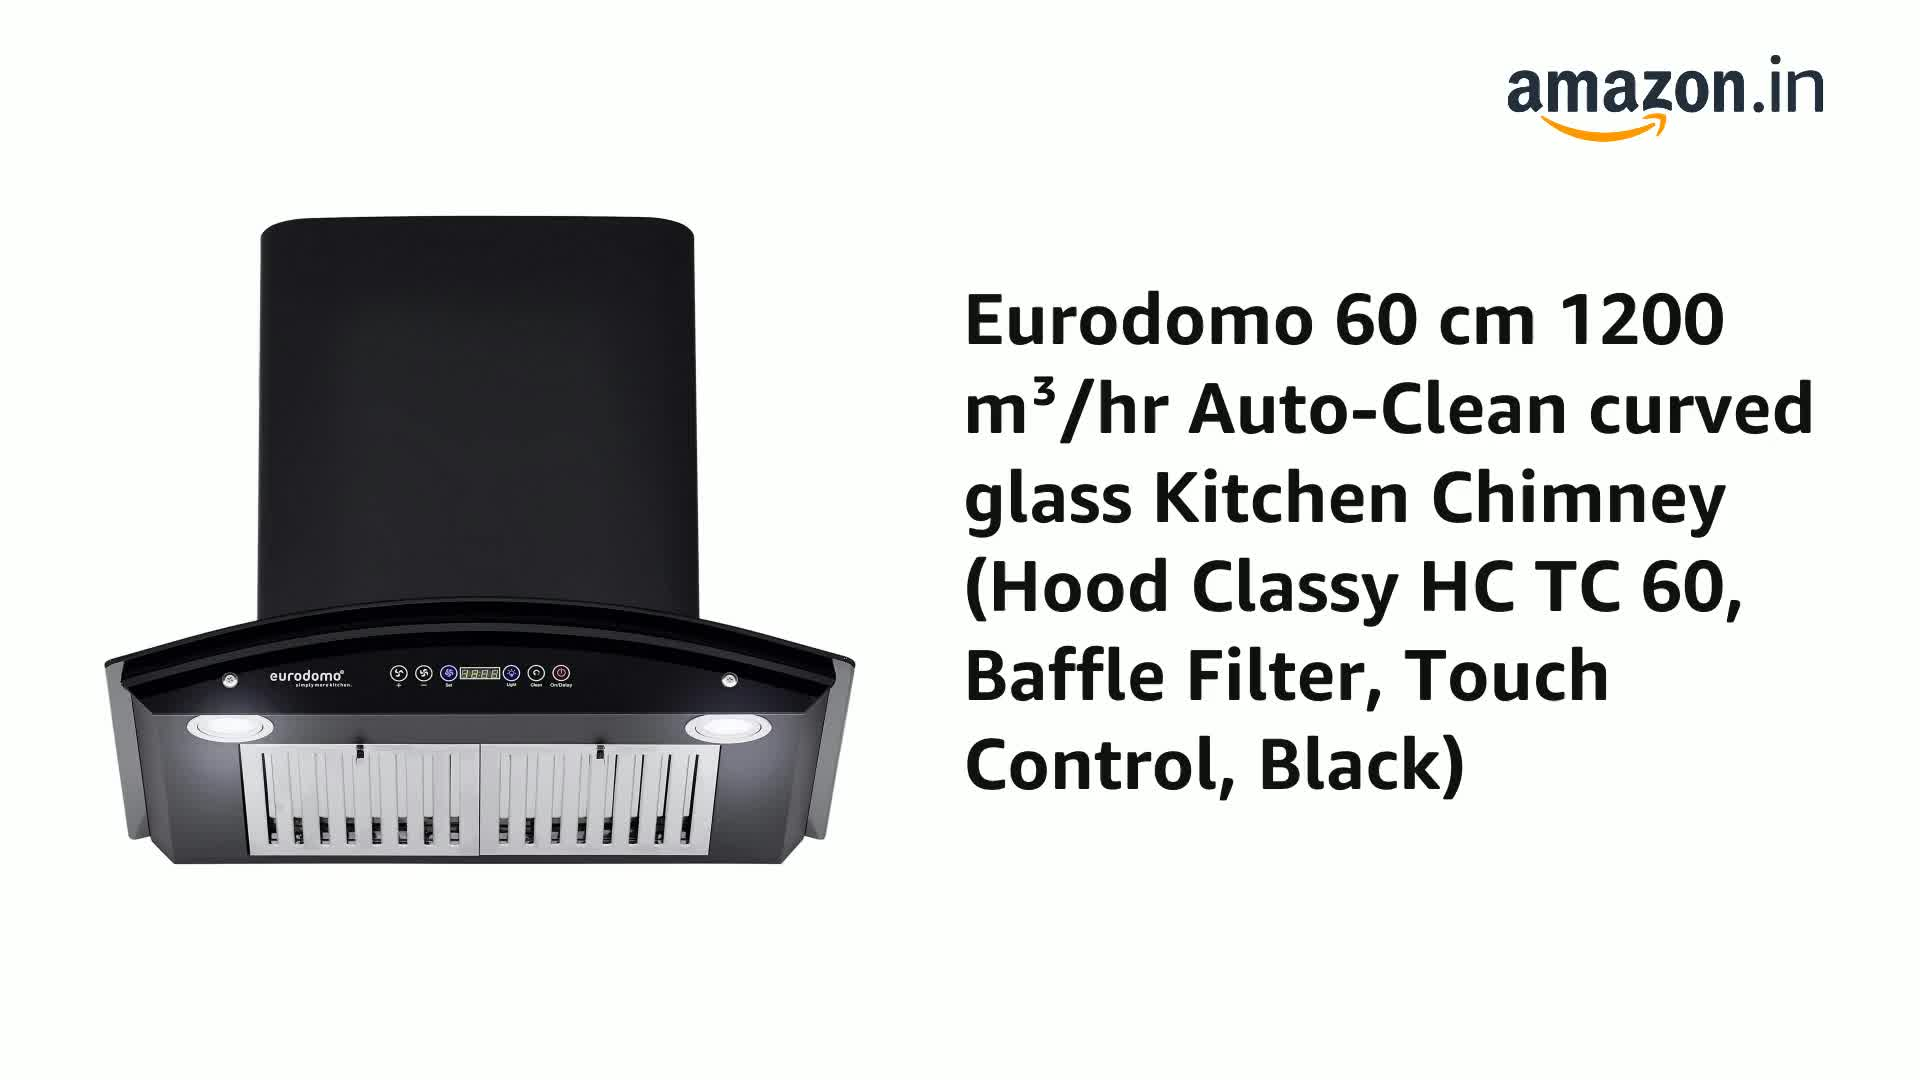 Eurodomo-60-cm-1200-mhr-Auto-Clean-curved-glass-Kitchen-Chimney-Hood-Classy-HC-TC-60-Baffle-Filter-Touch-Control-Black